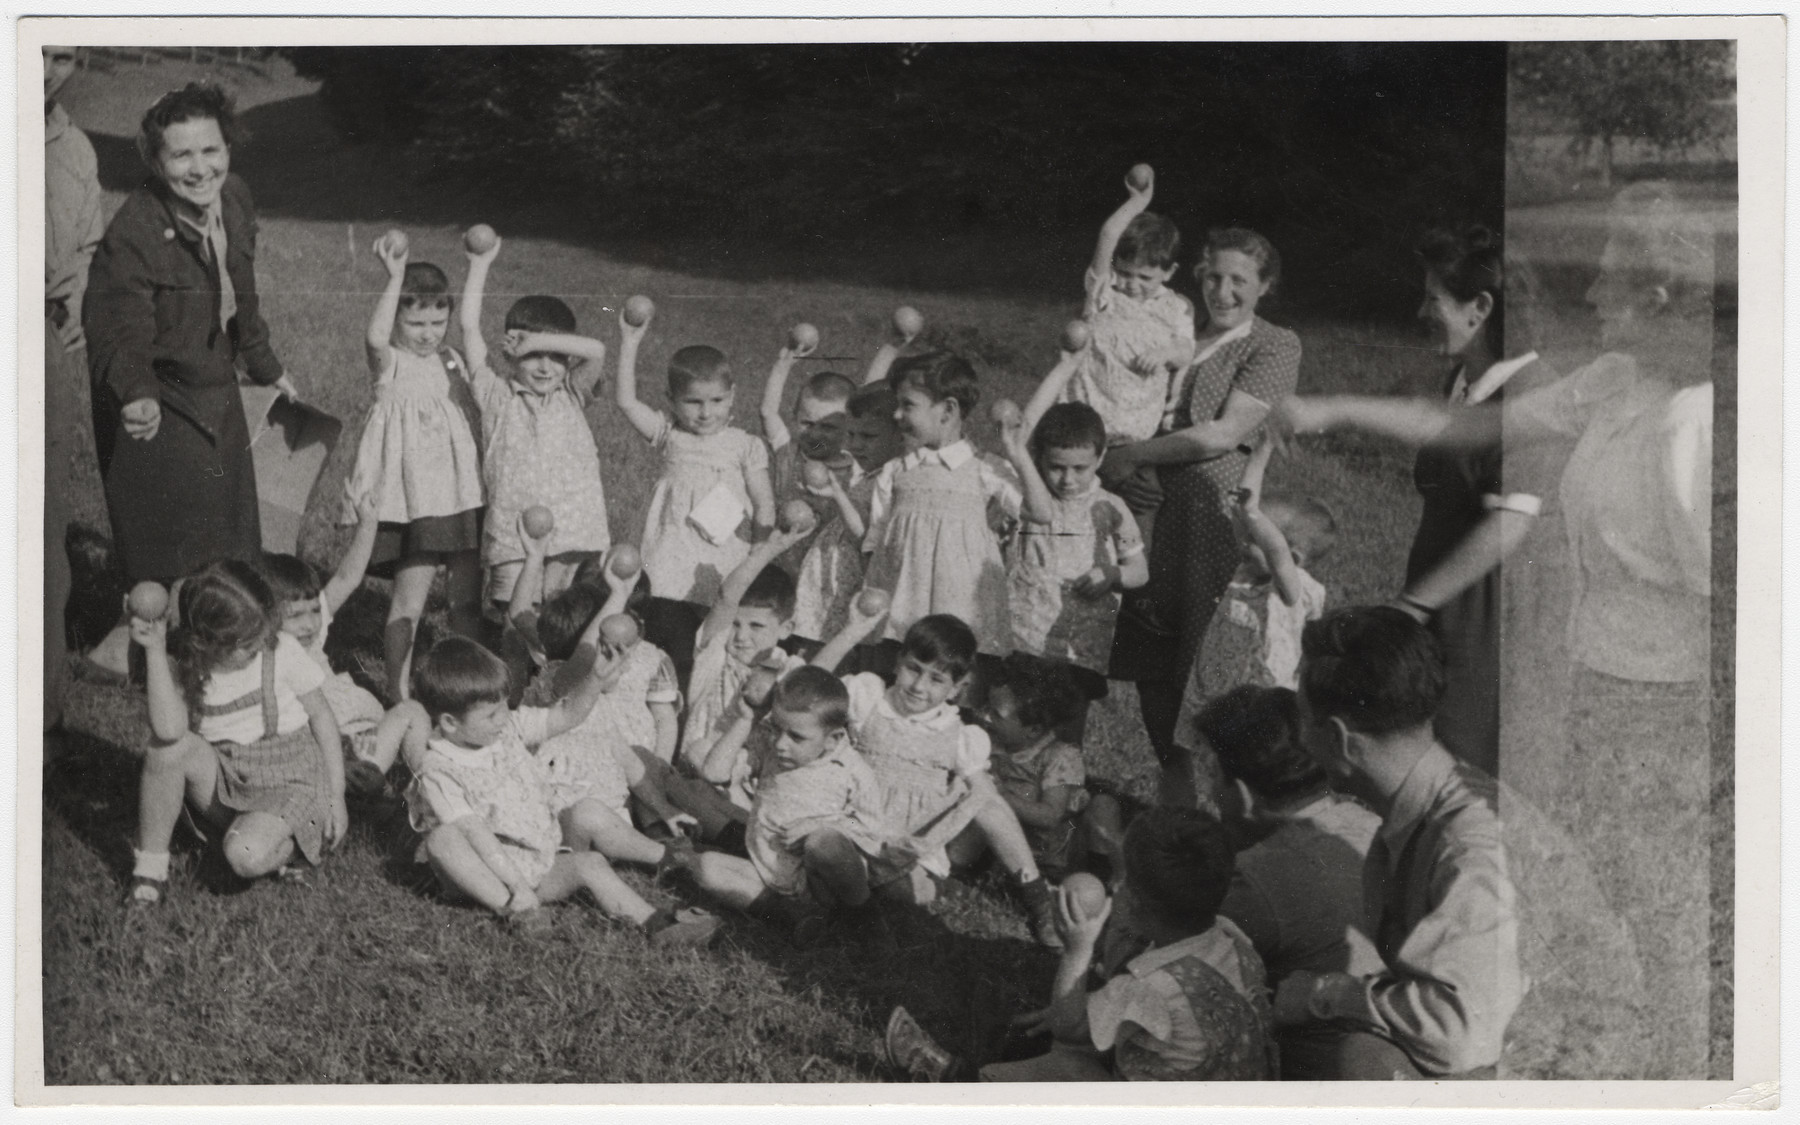 Young children [probably from Lindenfels] hold up pieces of fruit they received during an outdoor excursion.